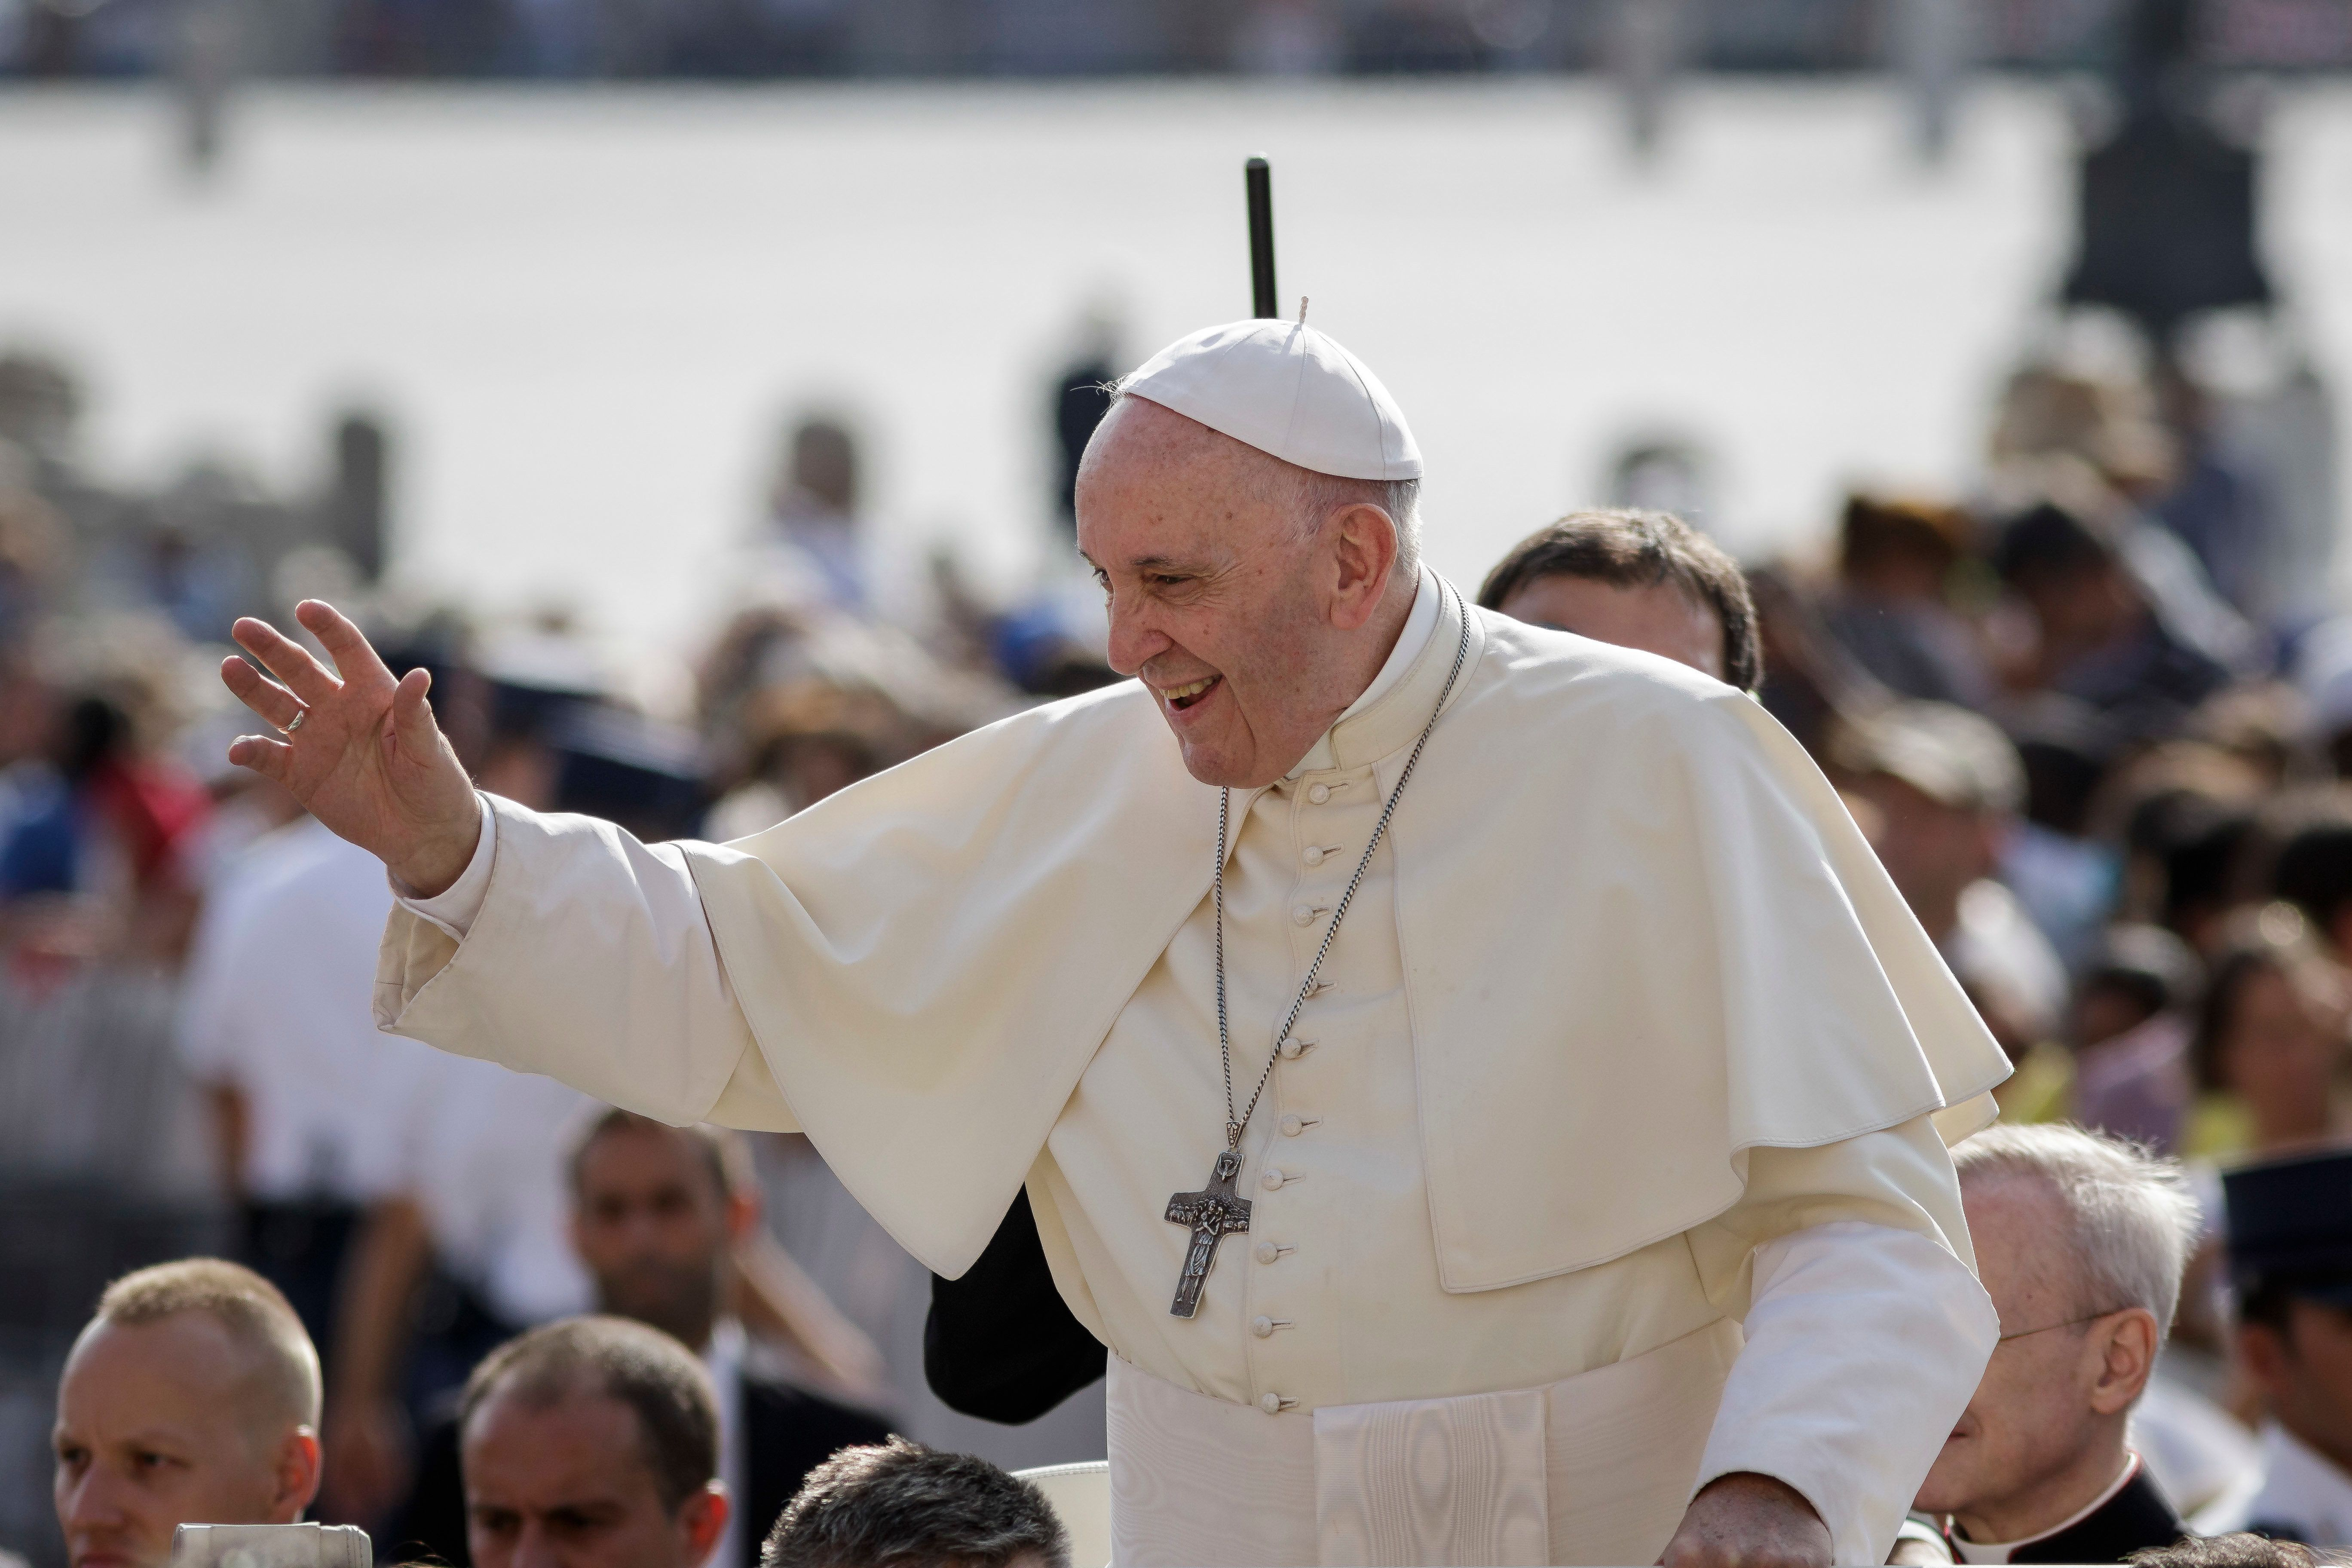 Pope Francis said he received six months of psychoanalysis during a difficult period of his life.